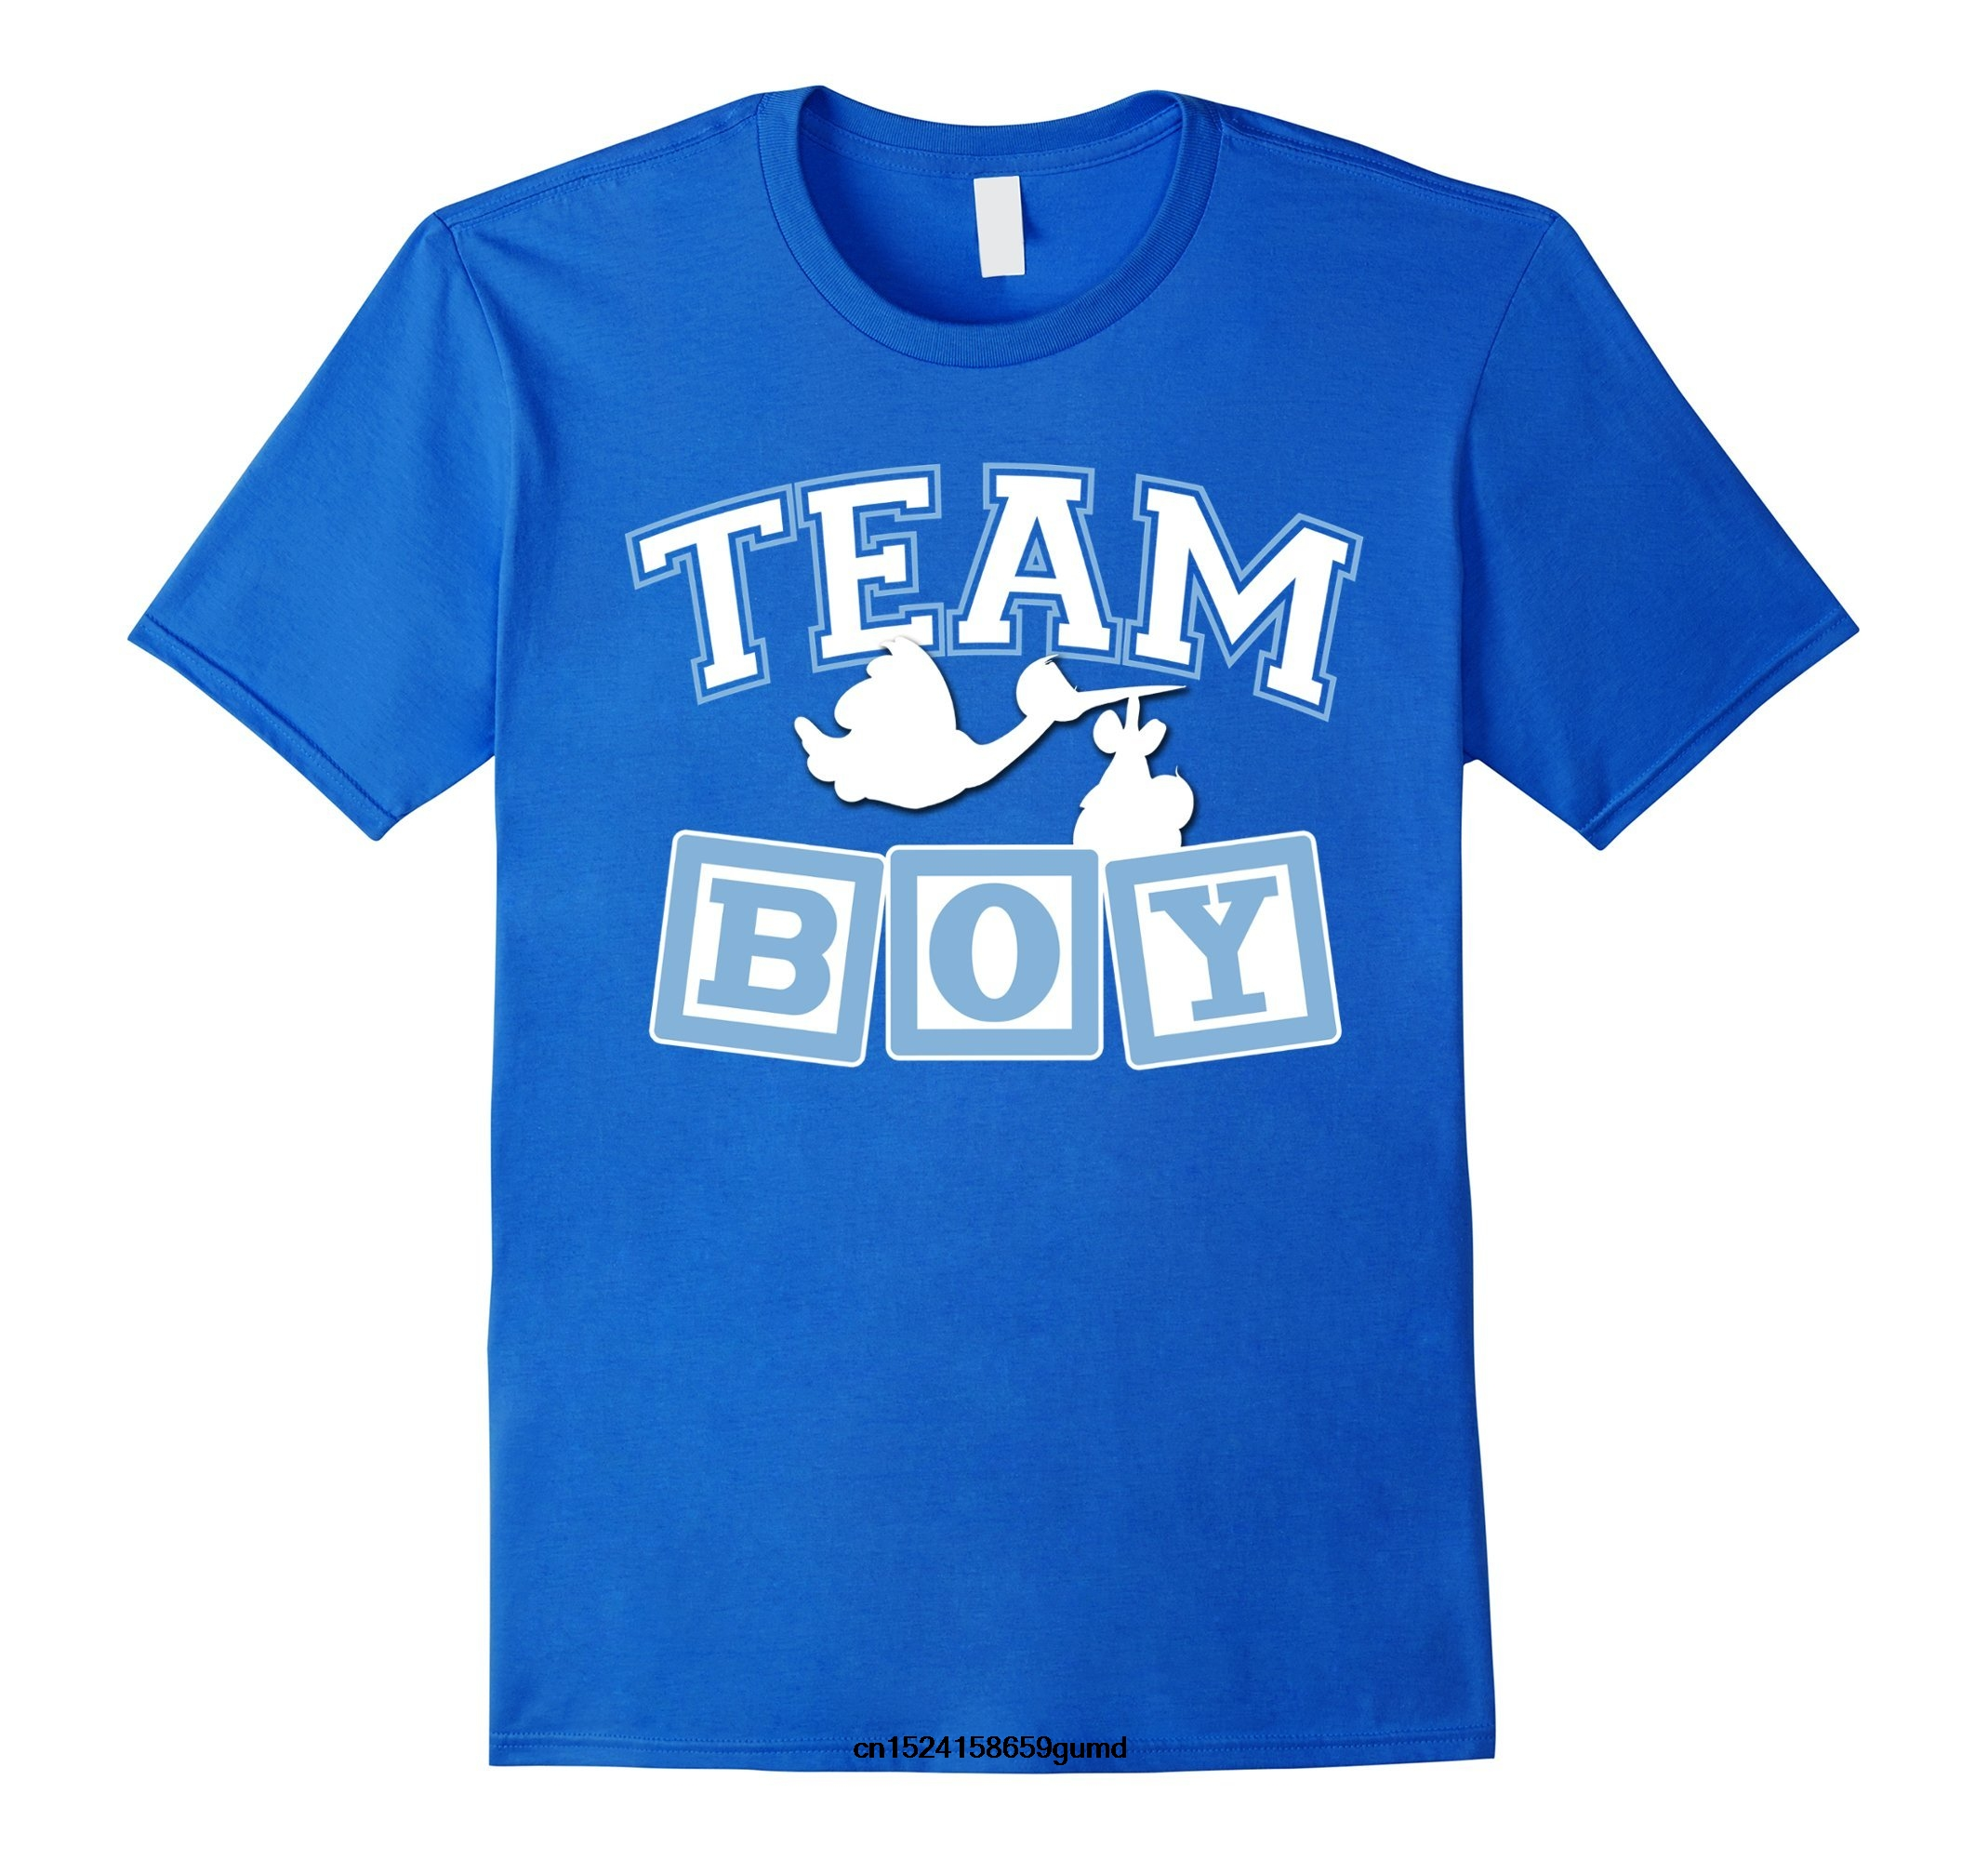 fda9b7a0 Buy gender reveal t shirt and get free shipping on AliExpress.com